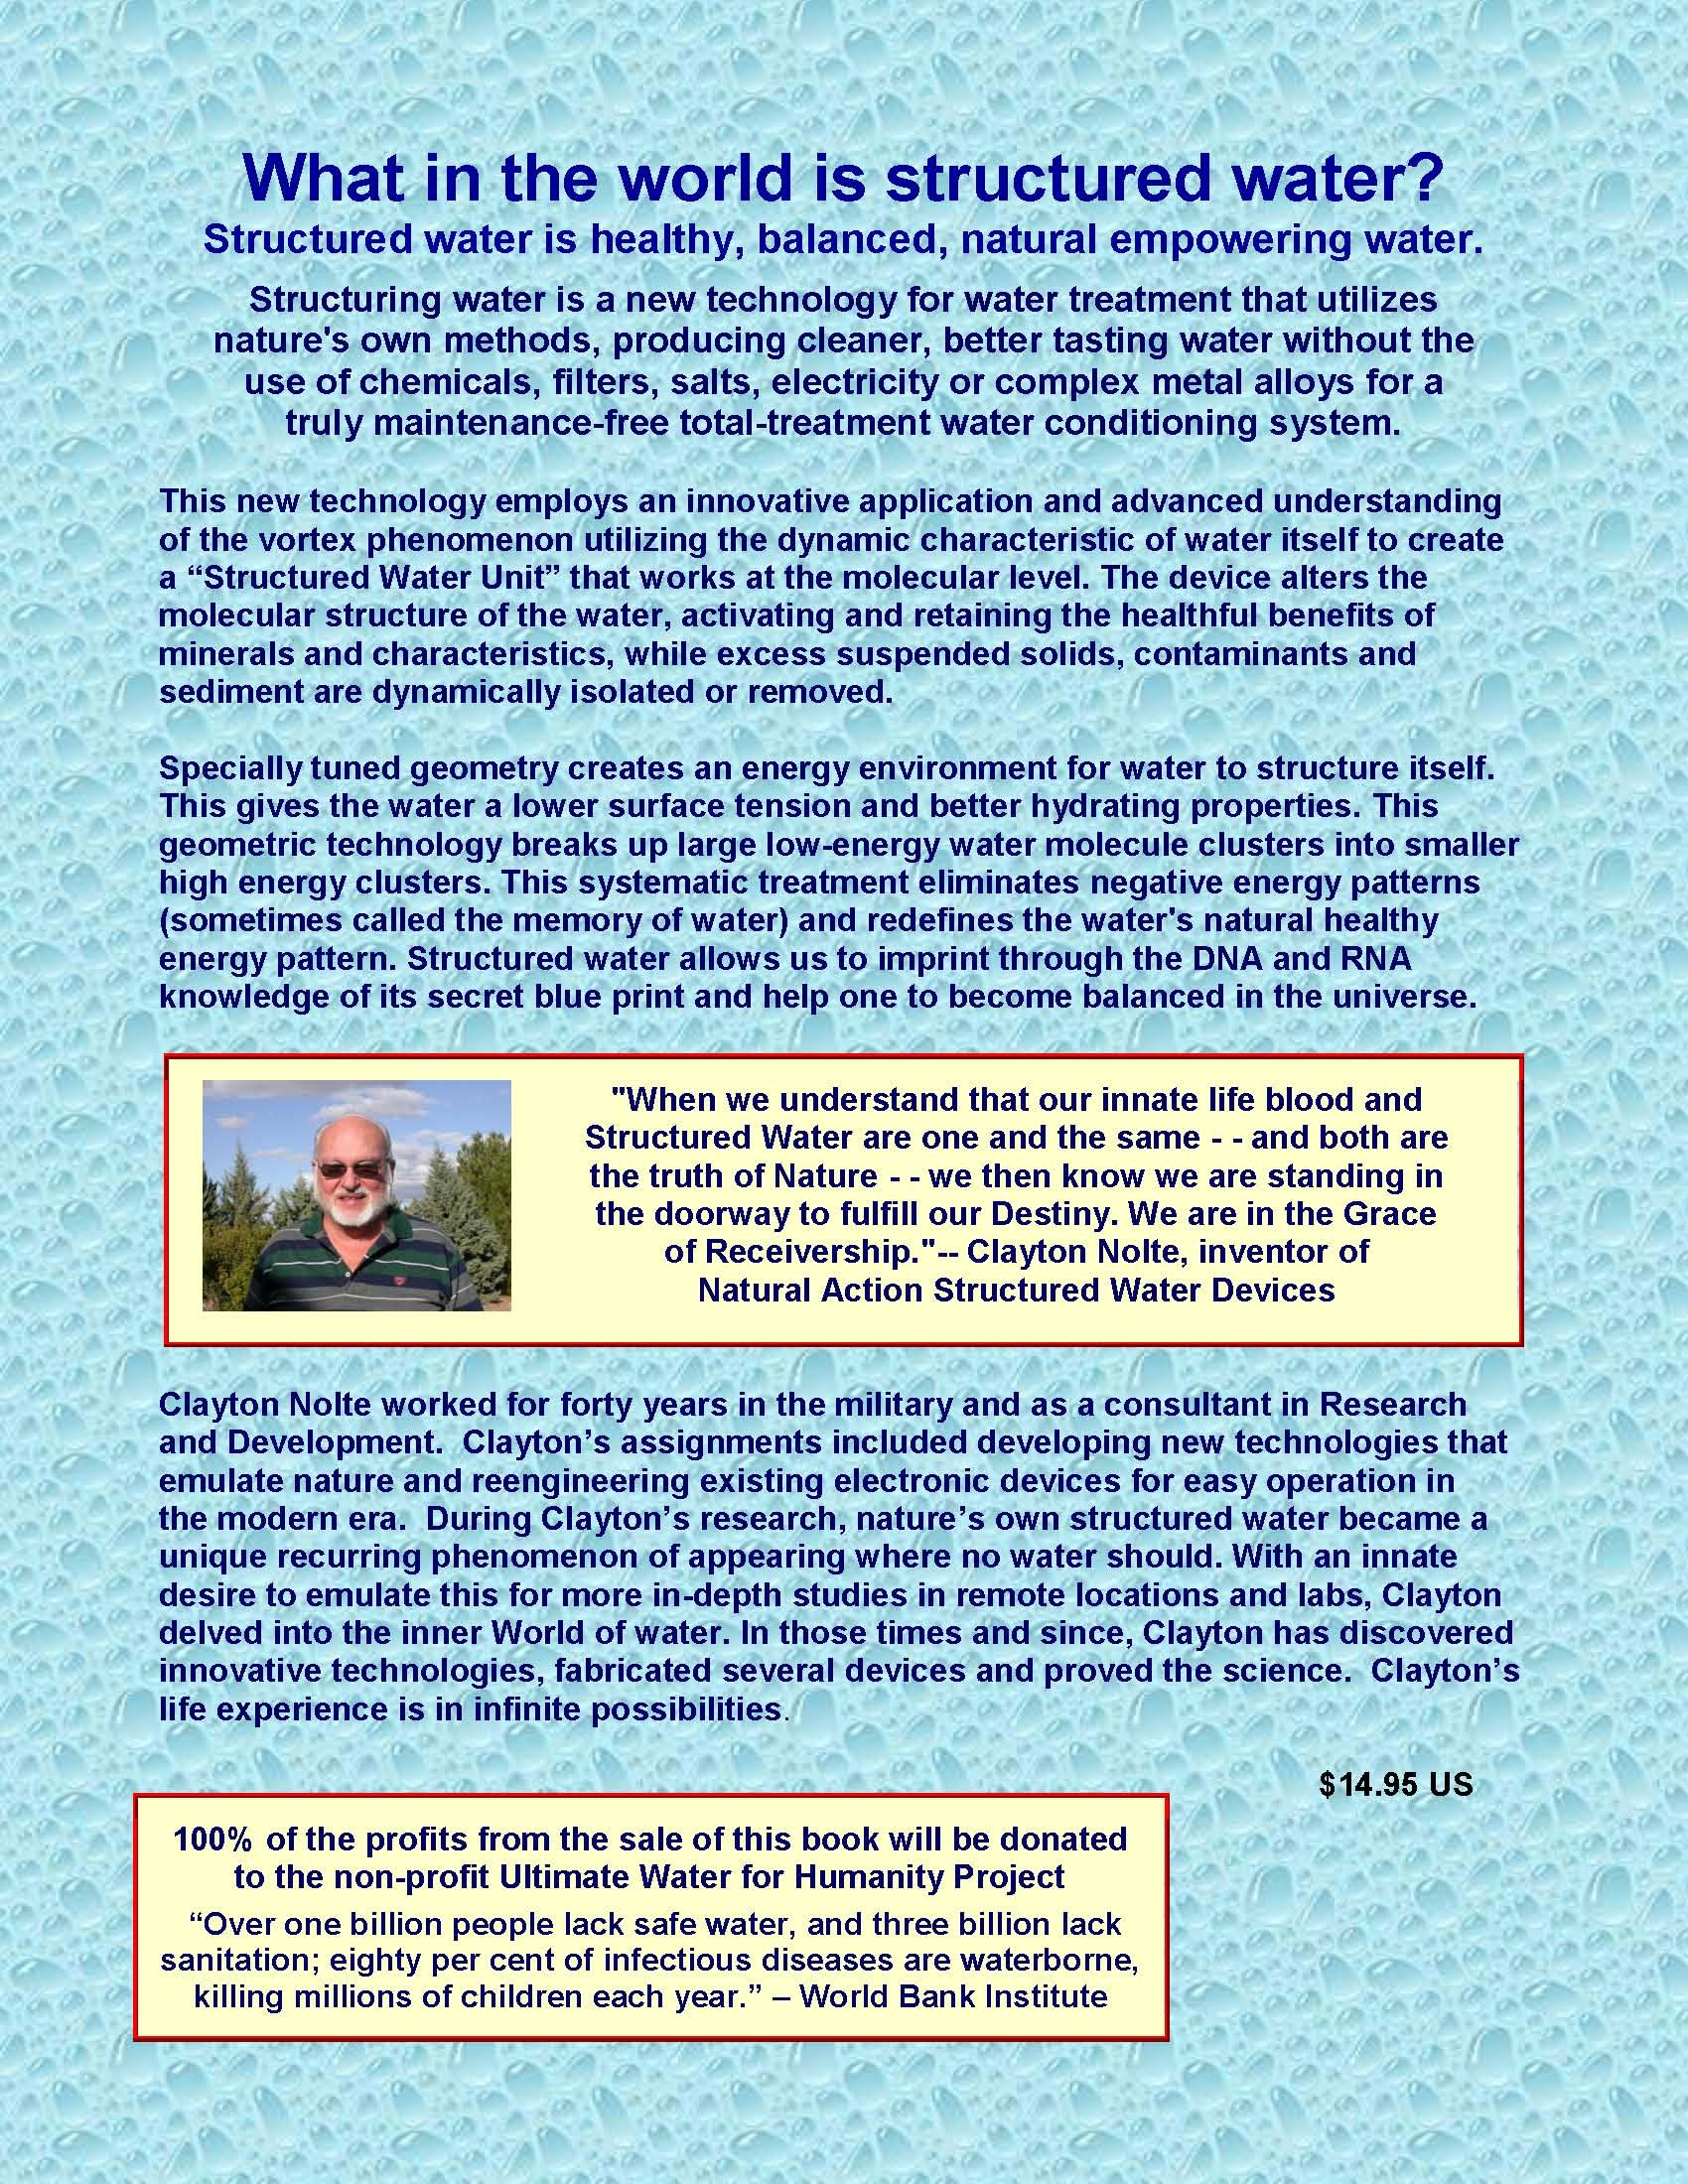 Introduction To Water Gardening: Structured Water Resources From Ultimate Destiny, Inc